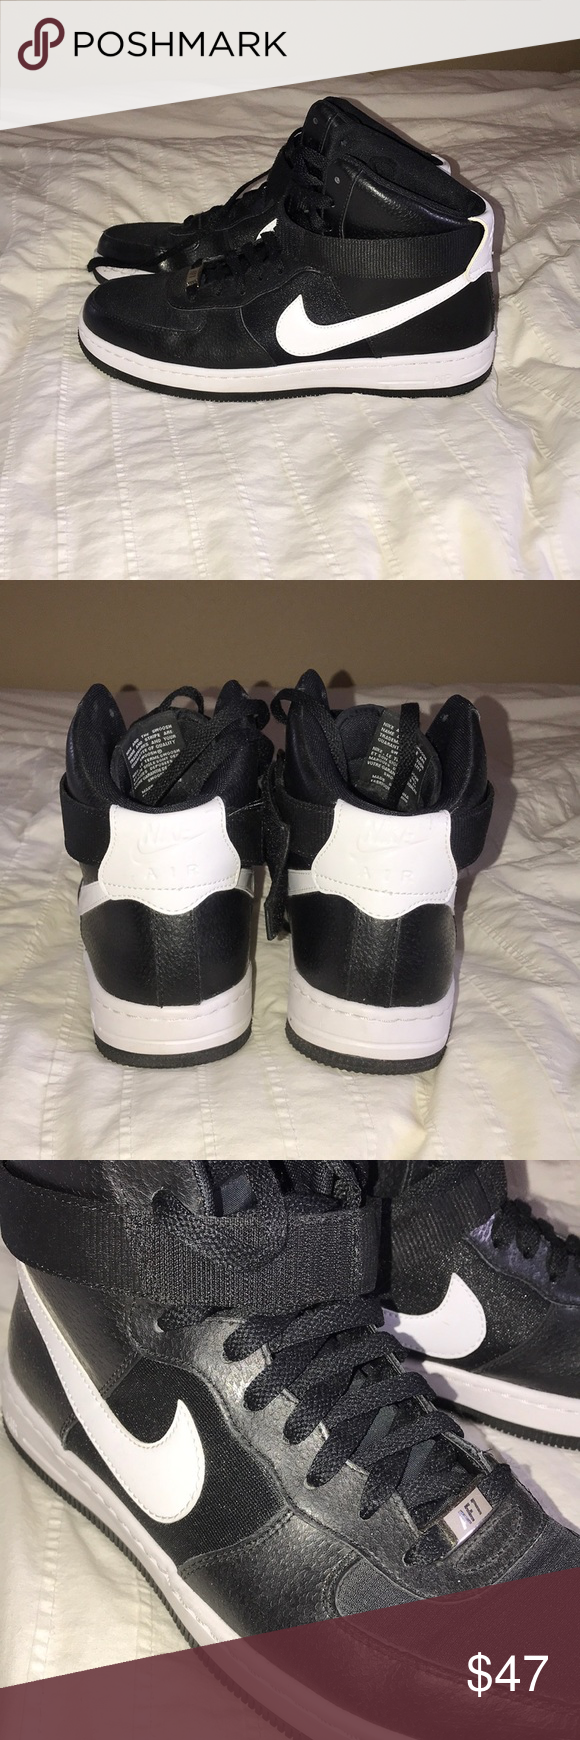 Black/white high top Air Force 1s Womens size 10 High top